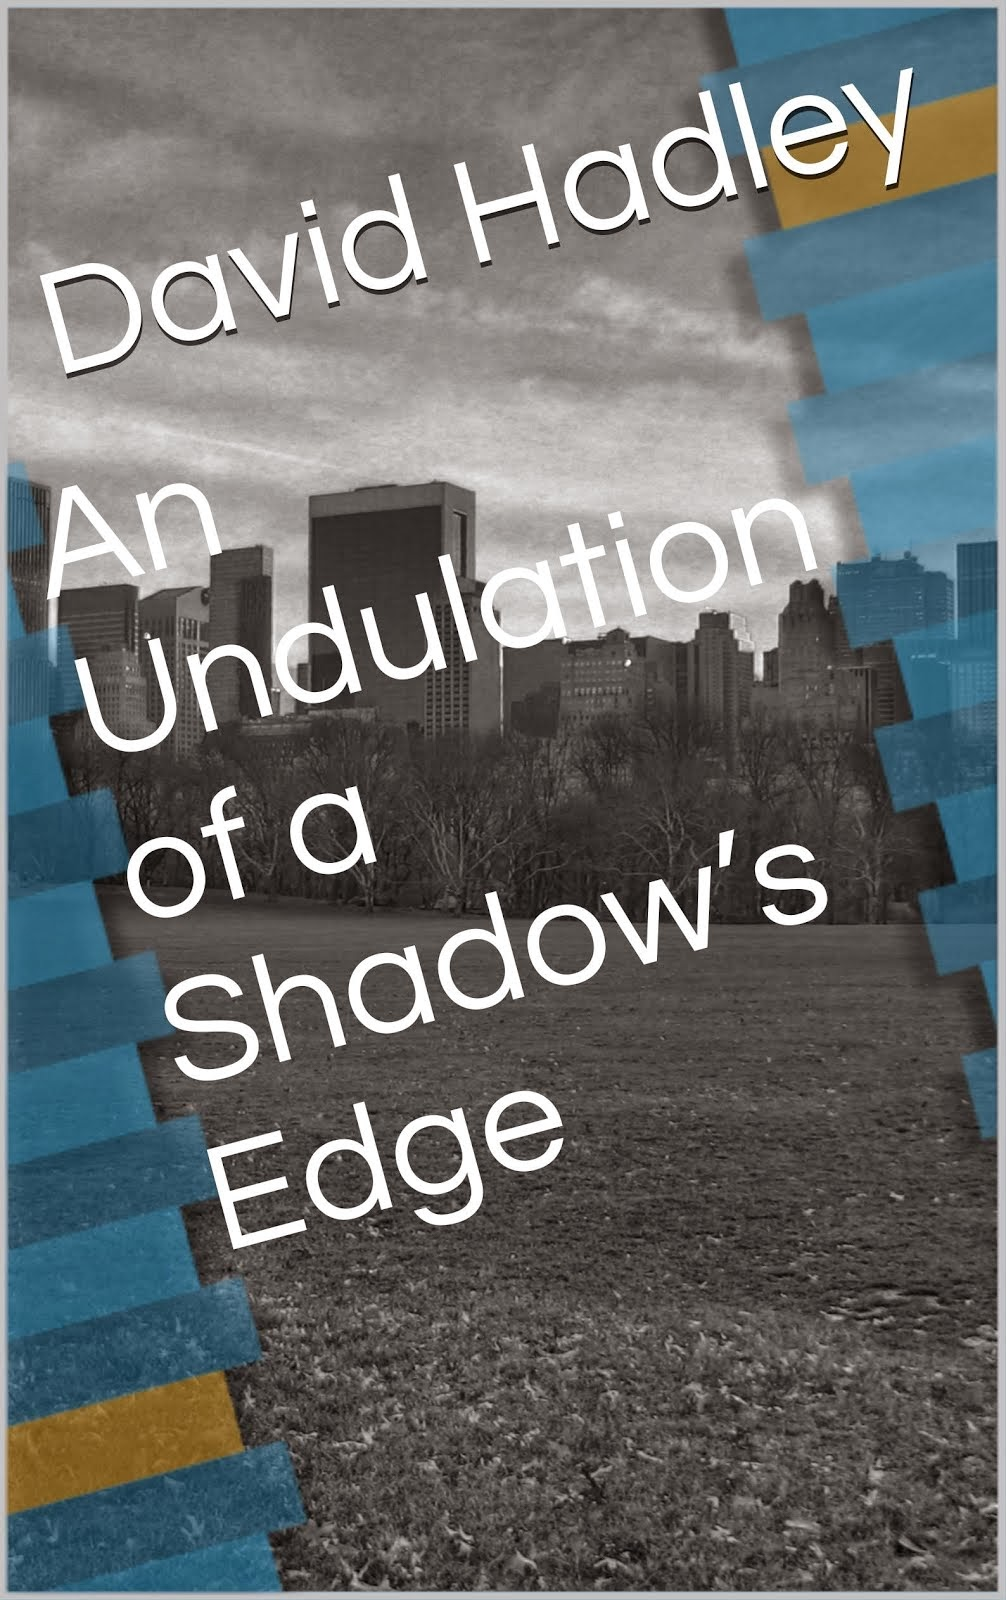 An Undulation of a Shadow's Edge